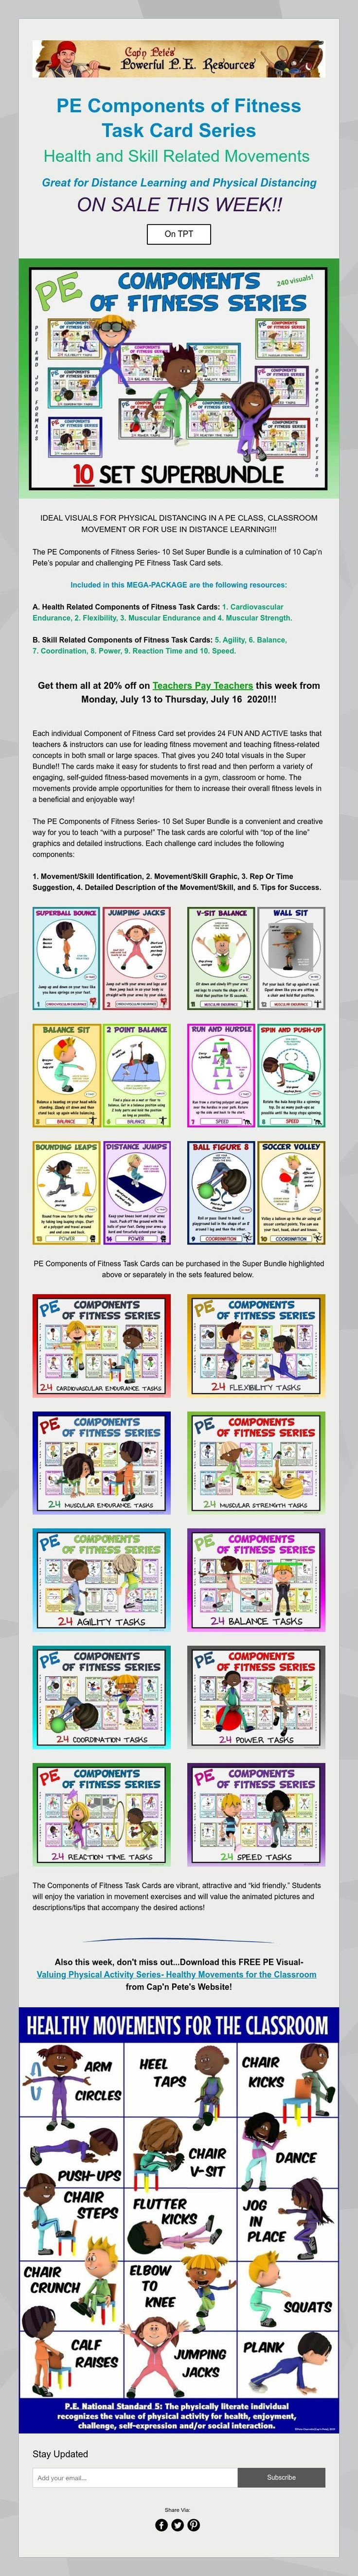 PE Components of Fitness Task Card Series Health and Skill